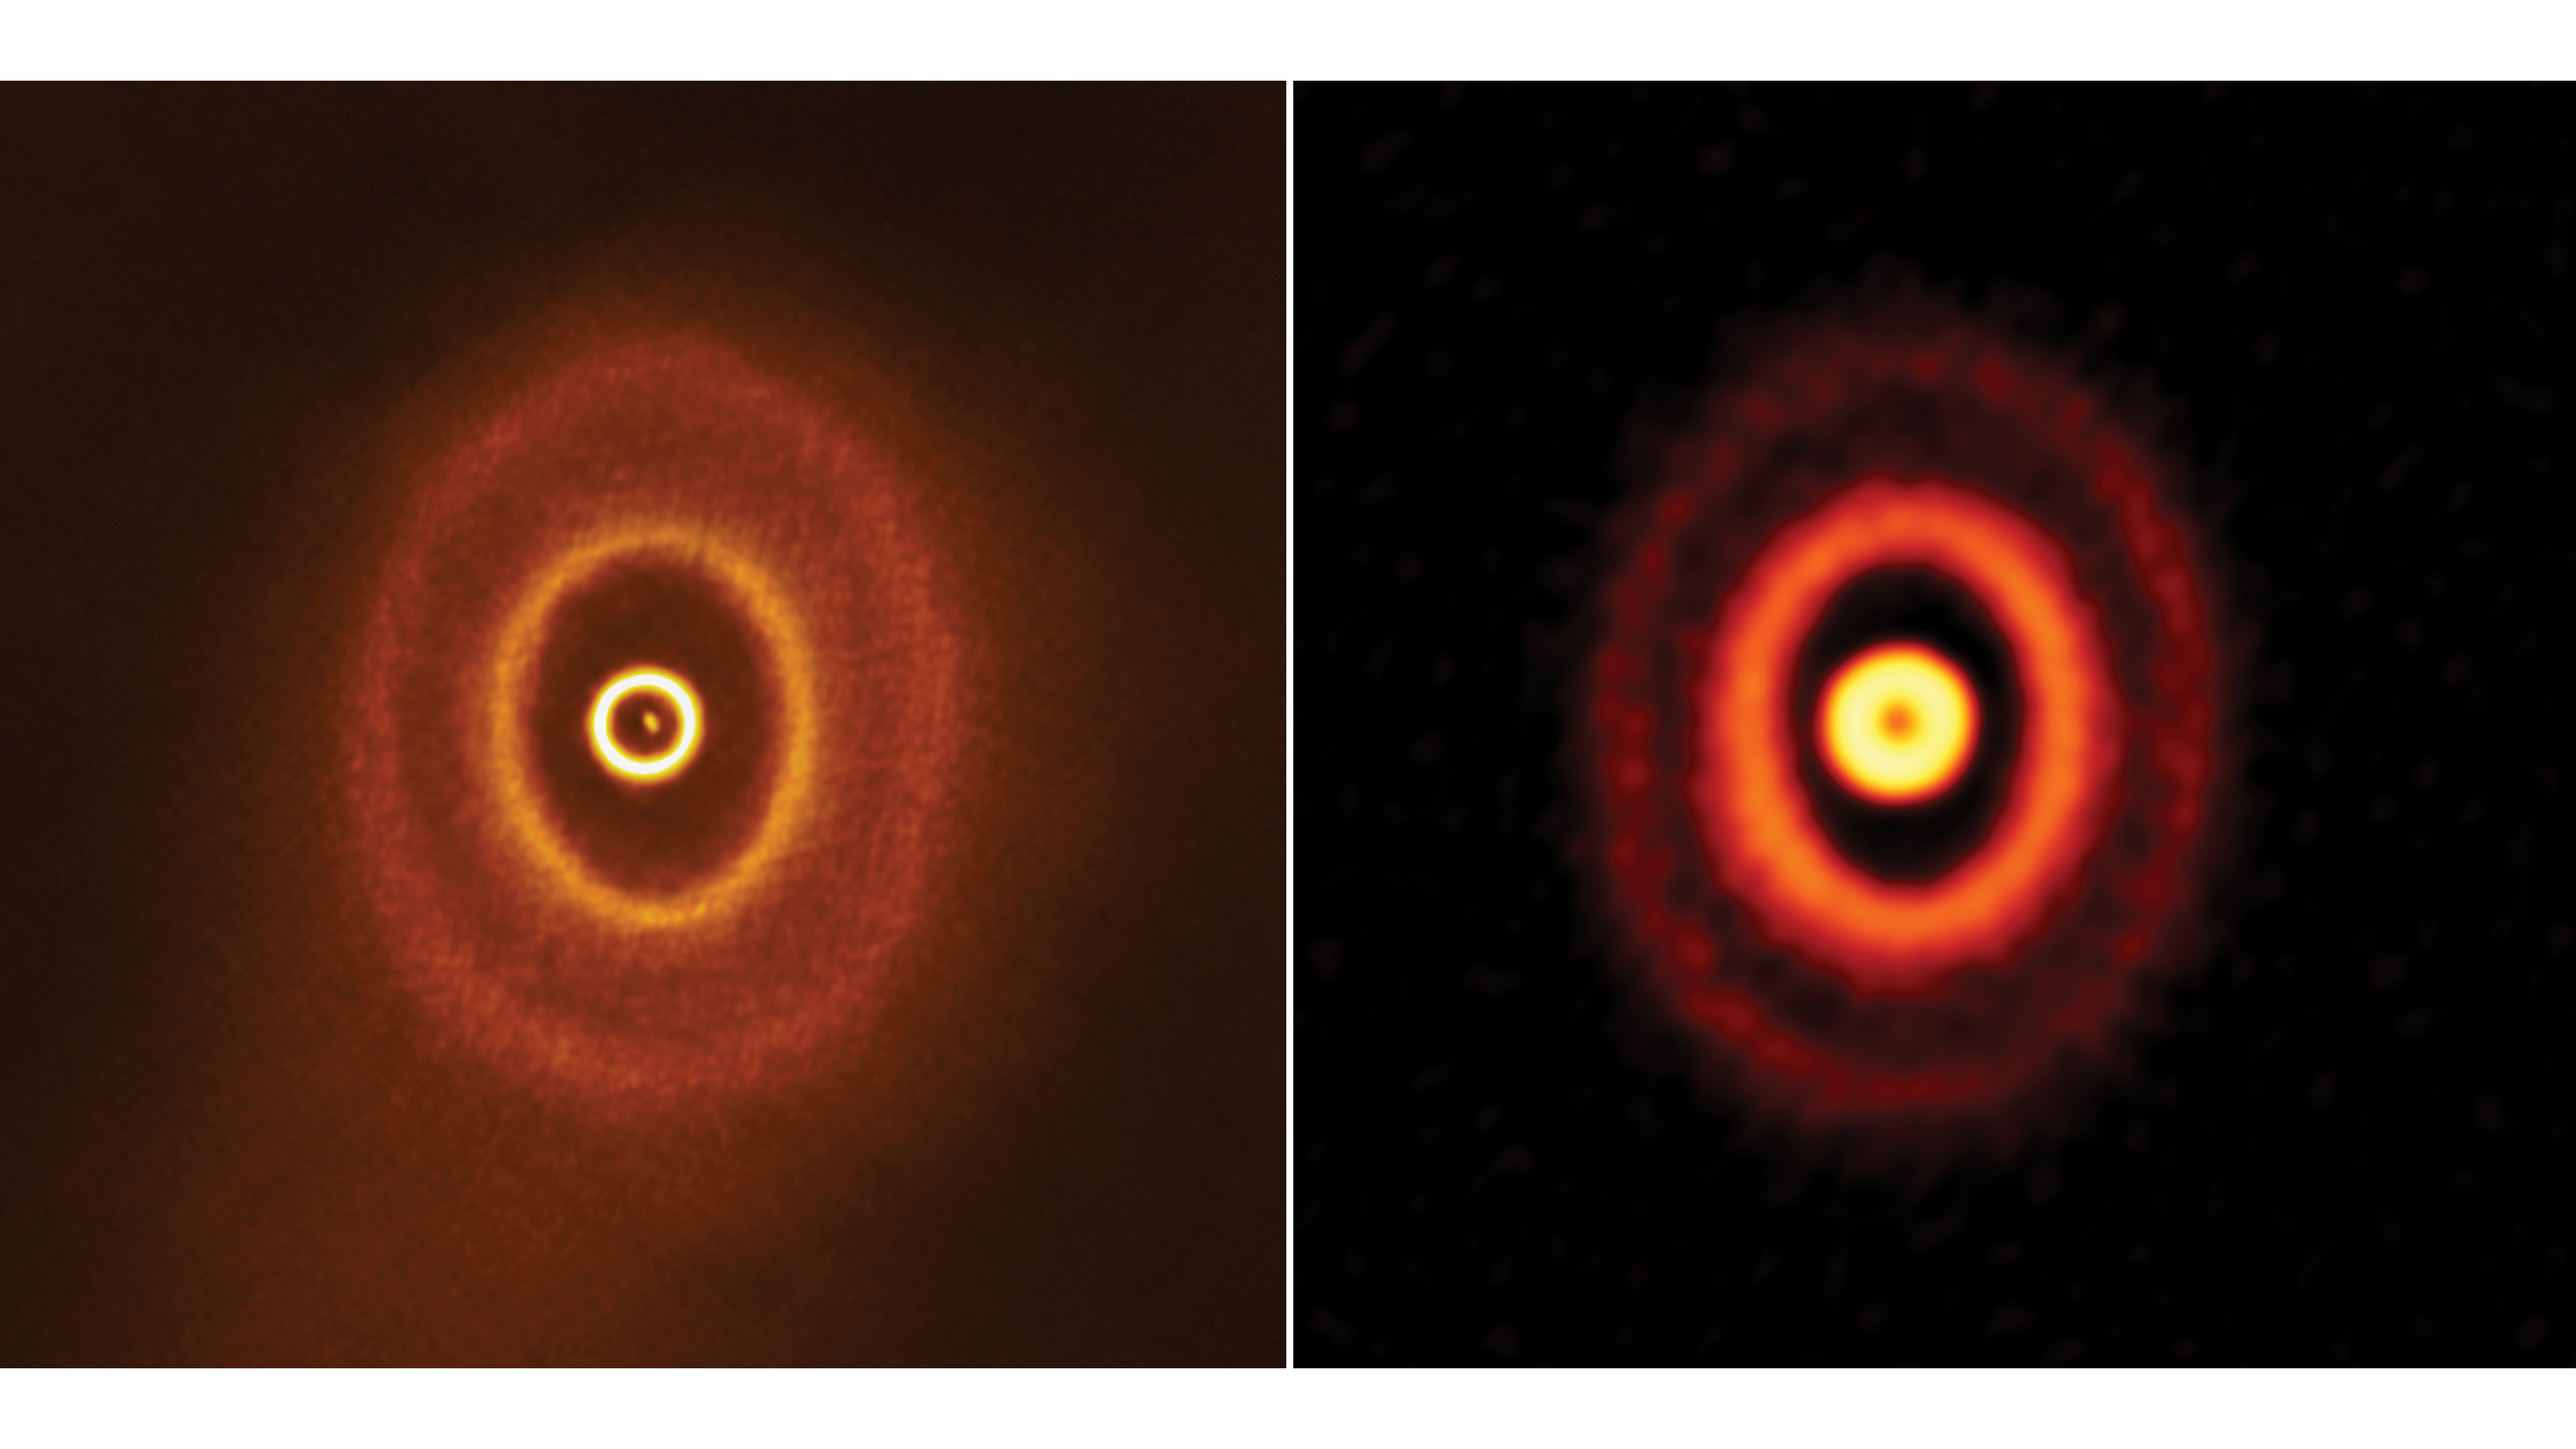 Tatooine-like exoplanet could be orbiting in this triple-star system